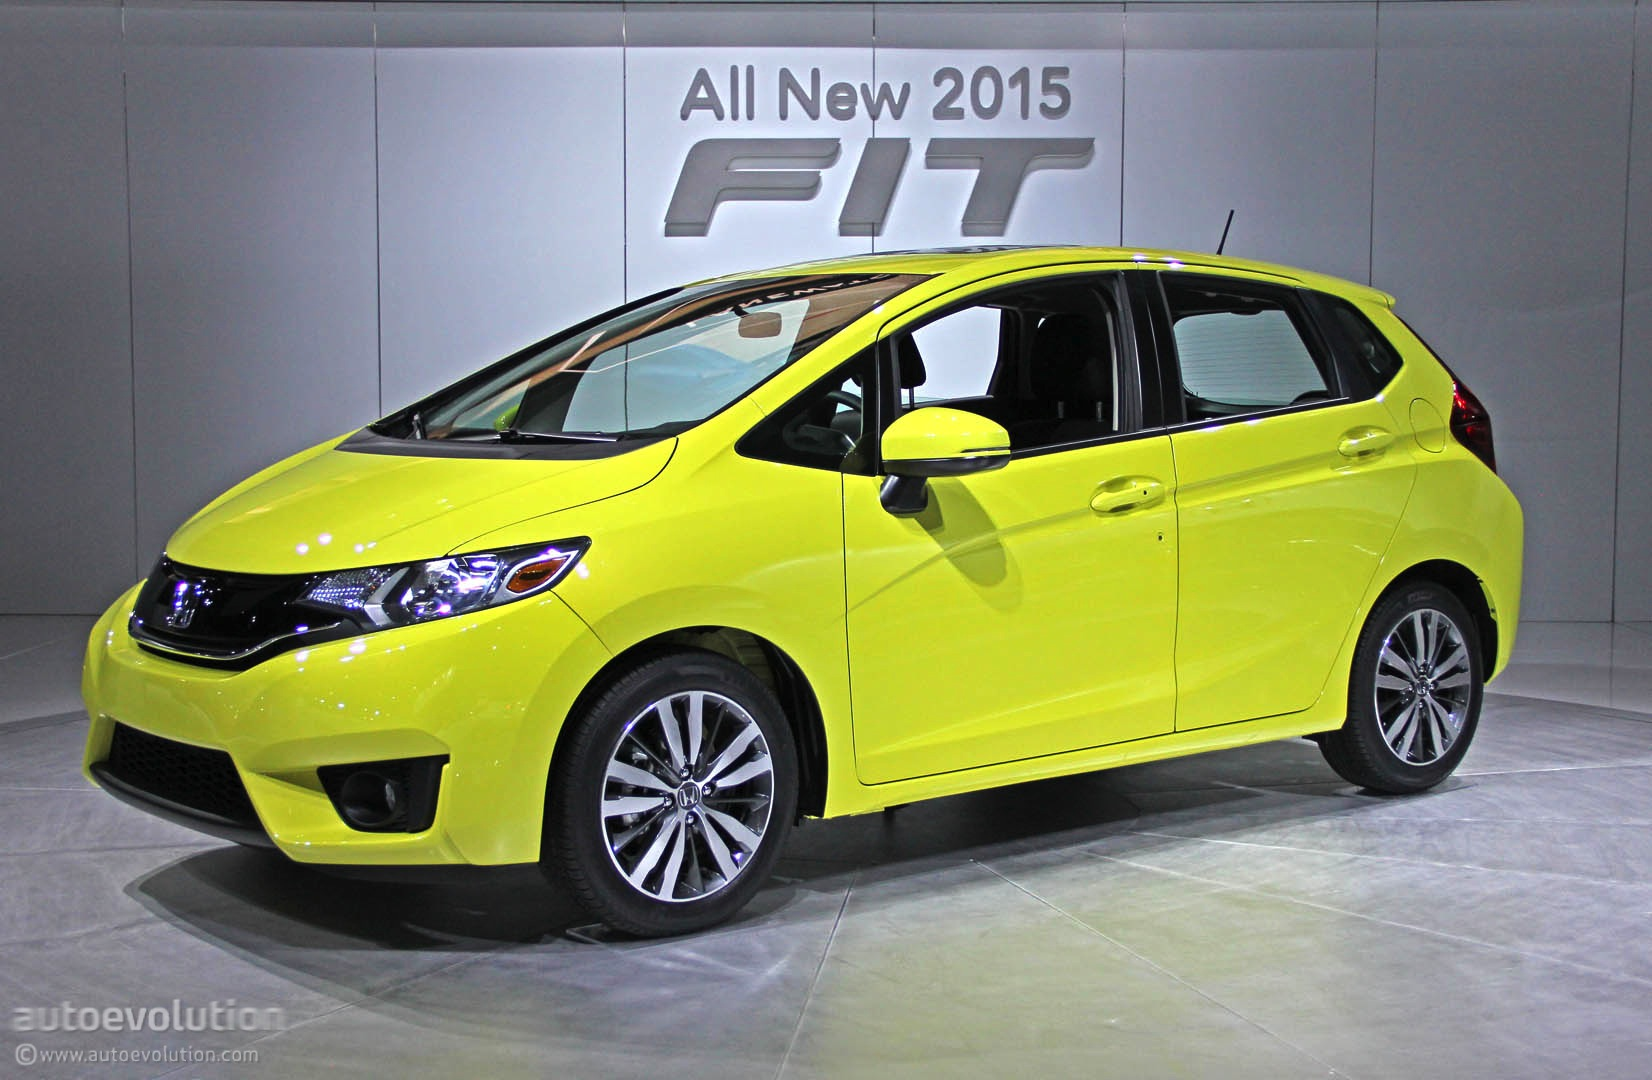 Honda Fit Mpg >> 2015 Honda Fit Debuts In Detroit Gets 41 Mpg Live Photos